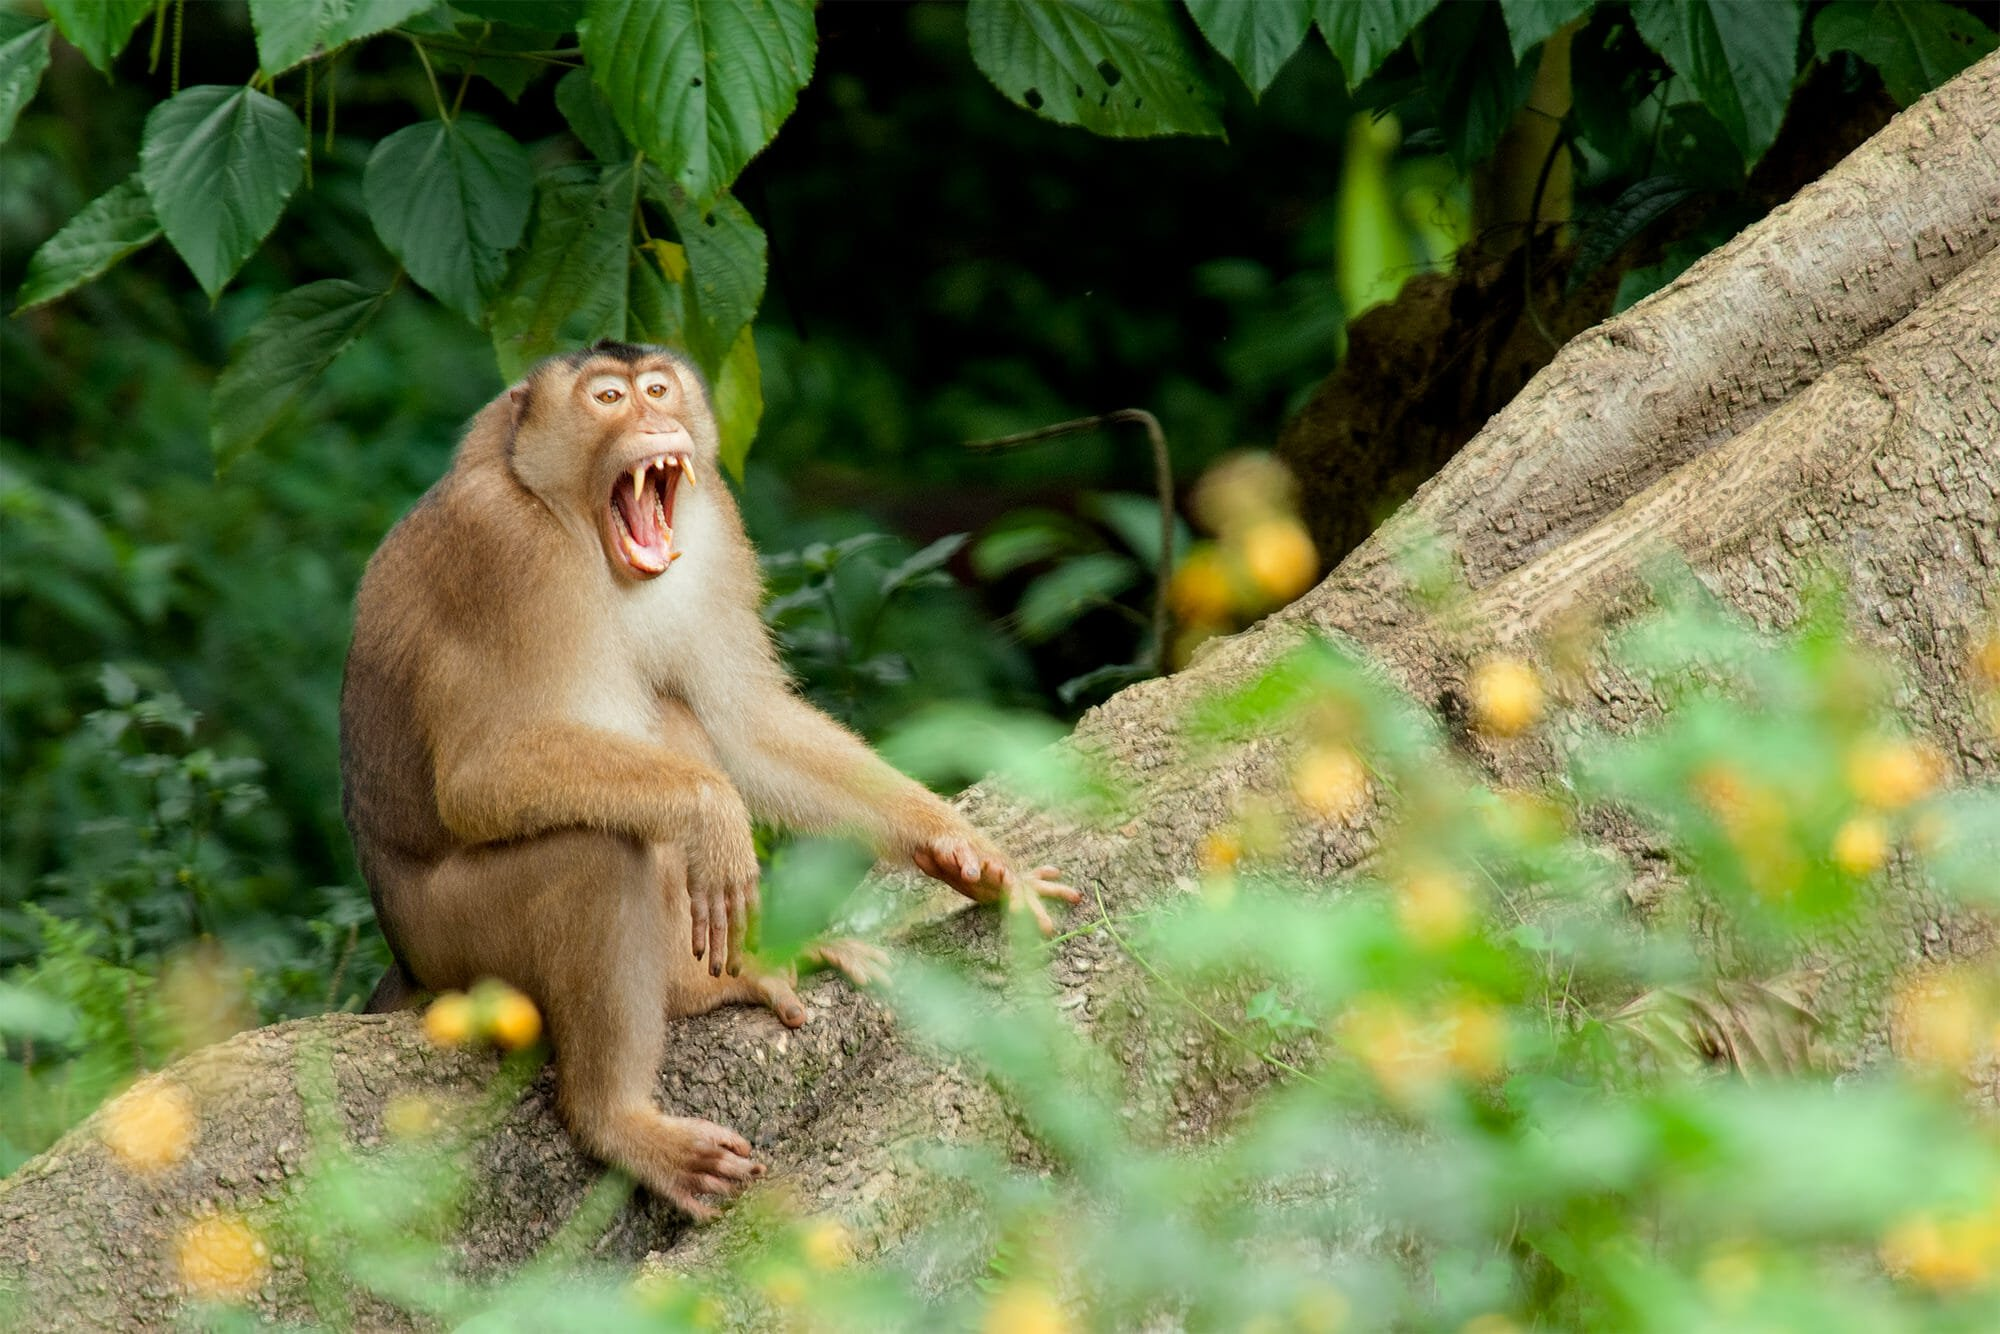 Wildlife of Kinabatangan river - Adult male Pig-tailed macaque